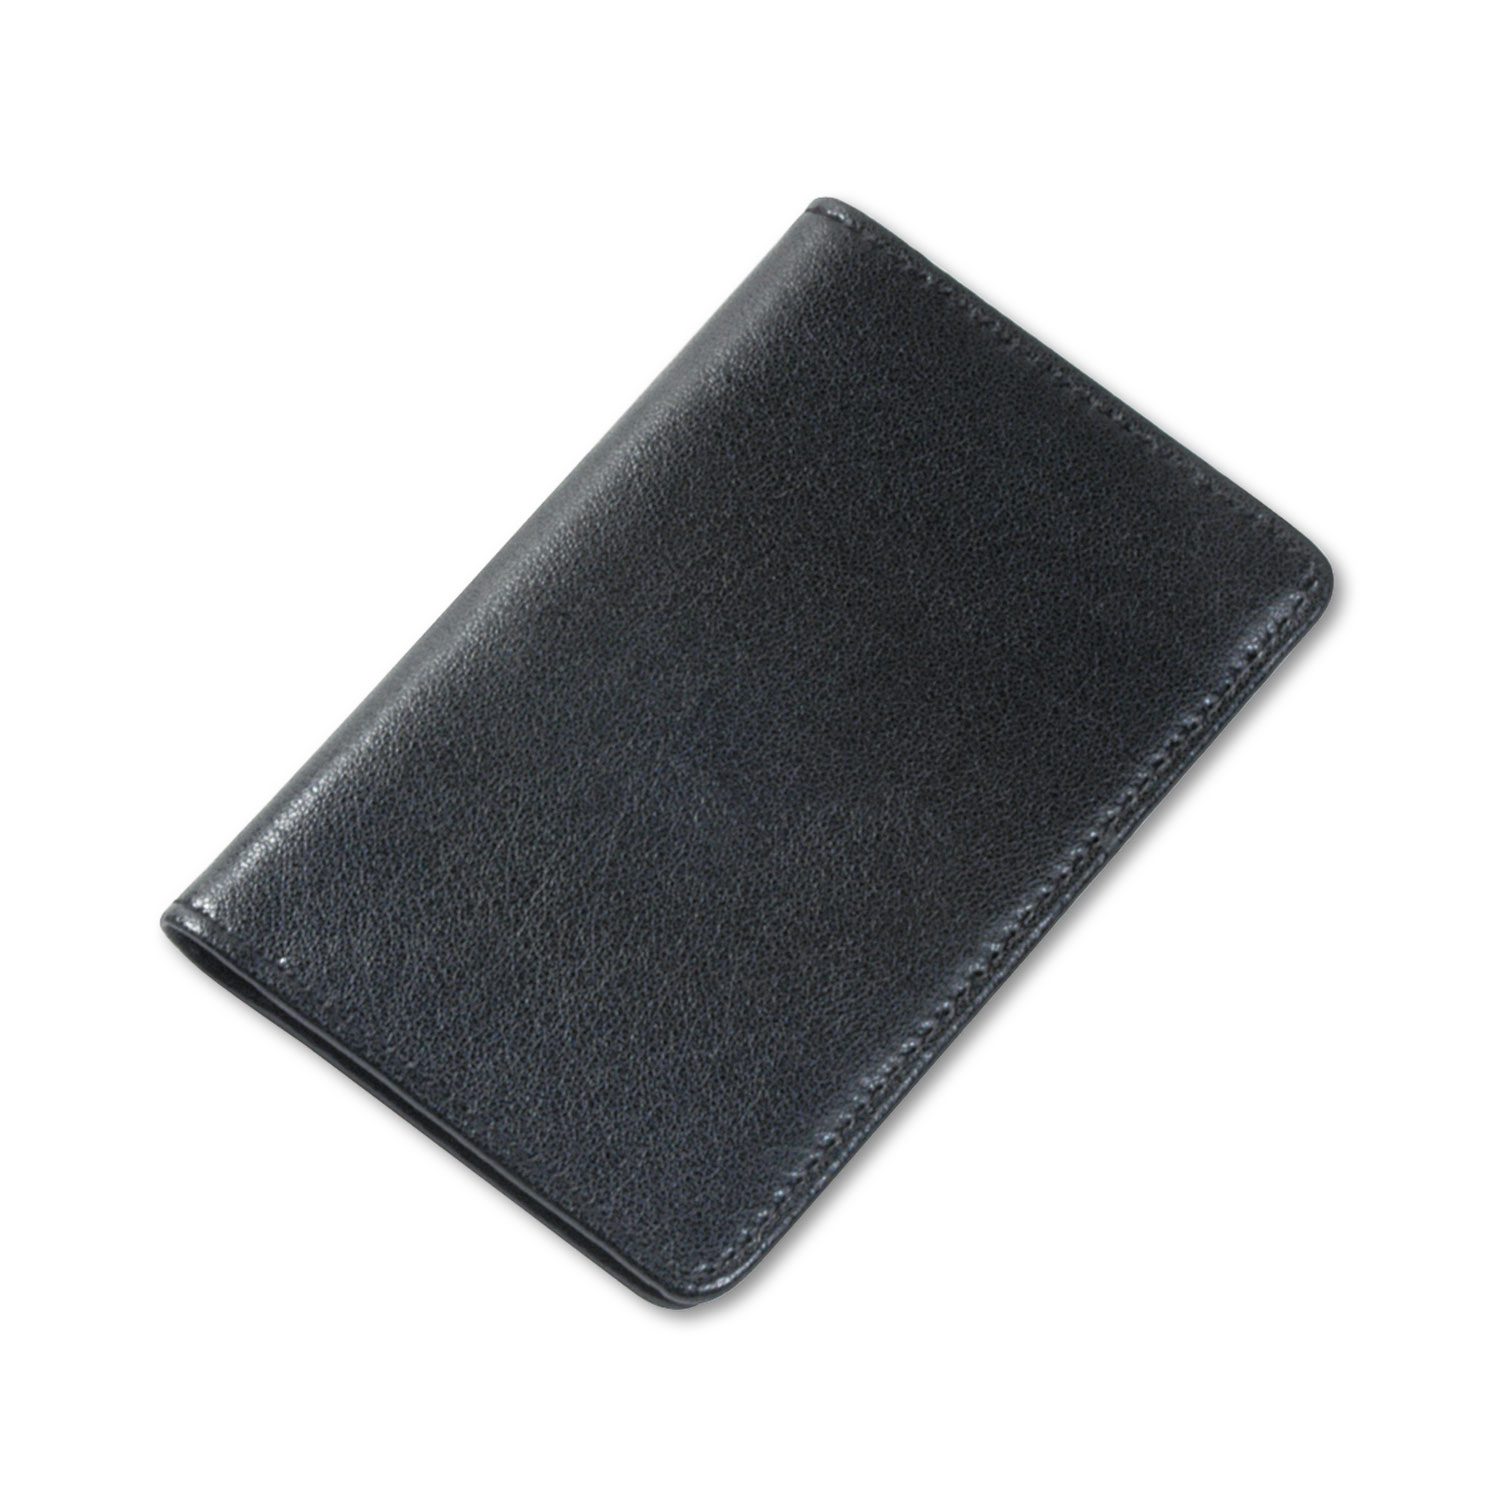 Regal leather business card wallet by samsill sam81220 sam81220 thumbnail 1 sam81220 thumbnail 2 colourmoves Images